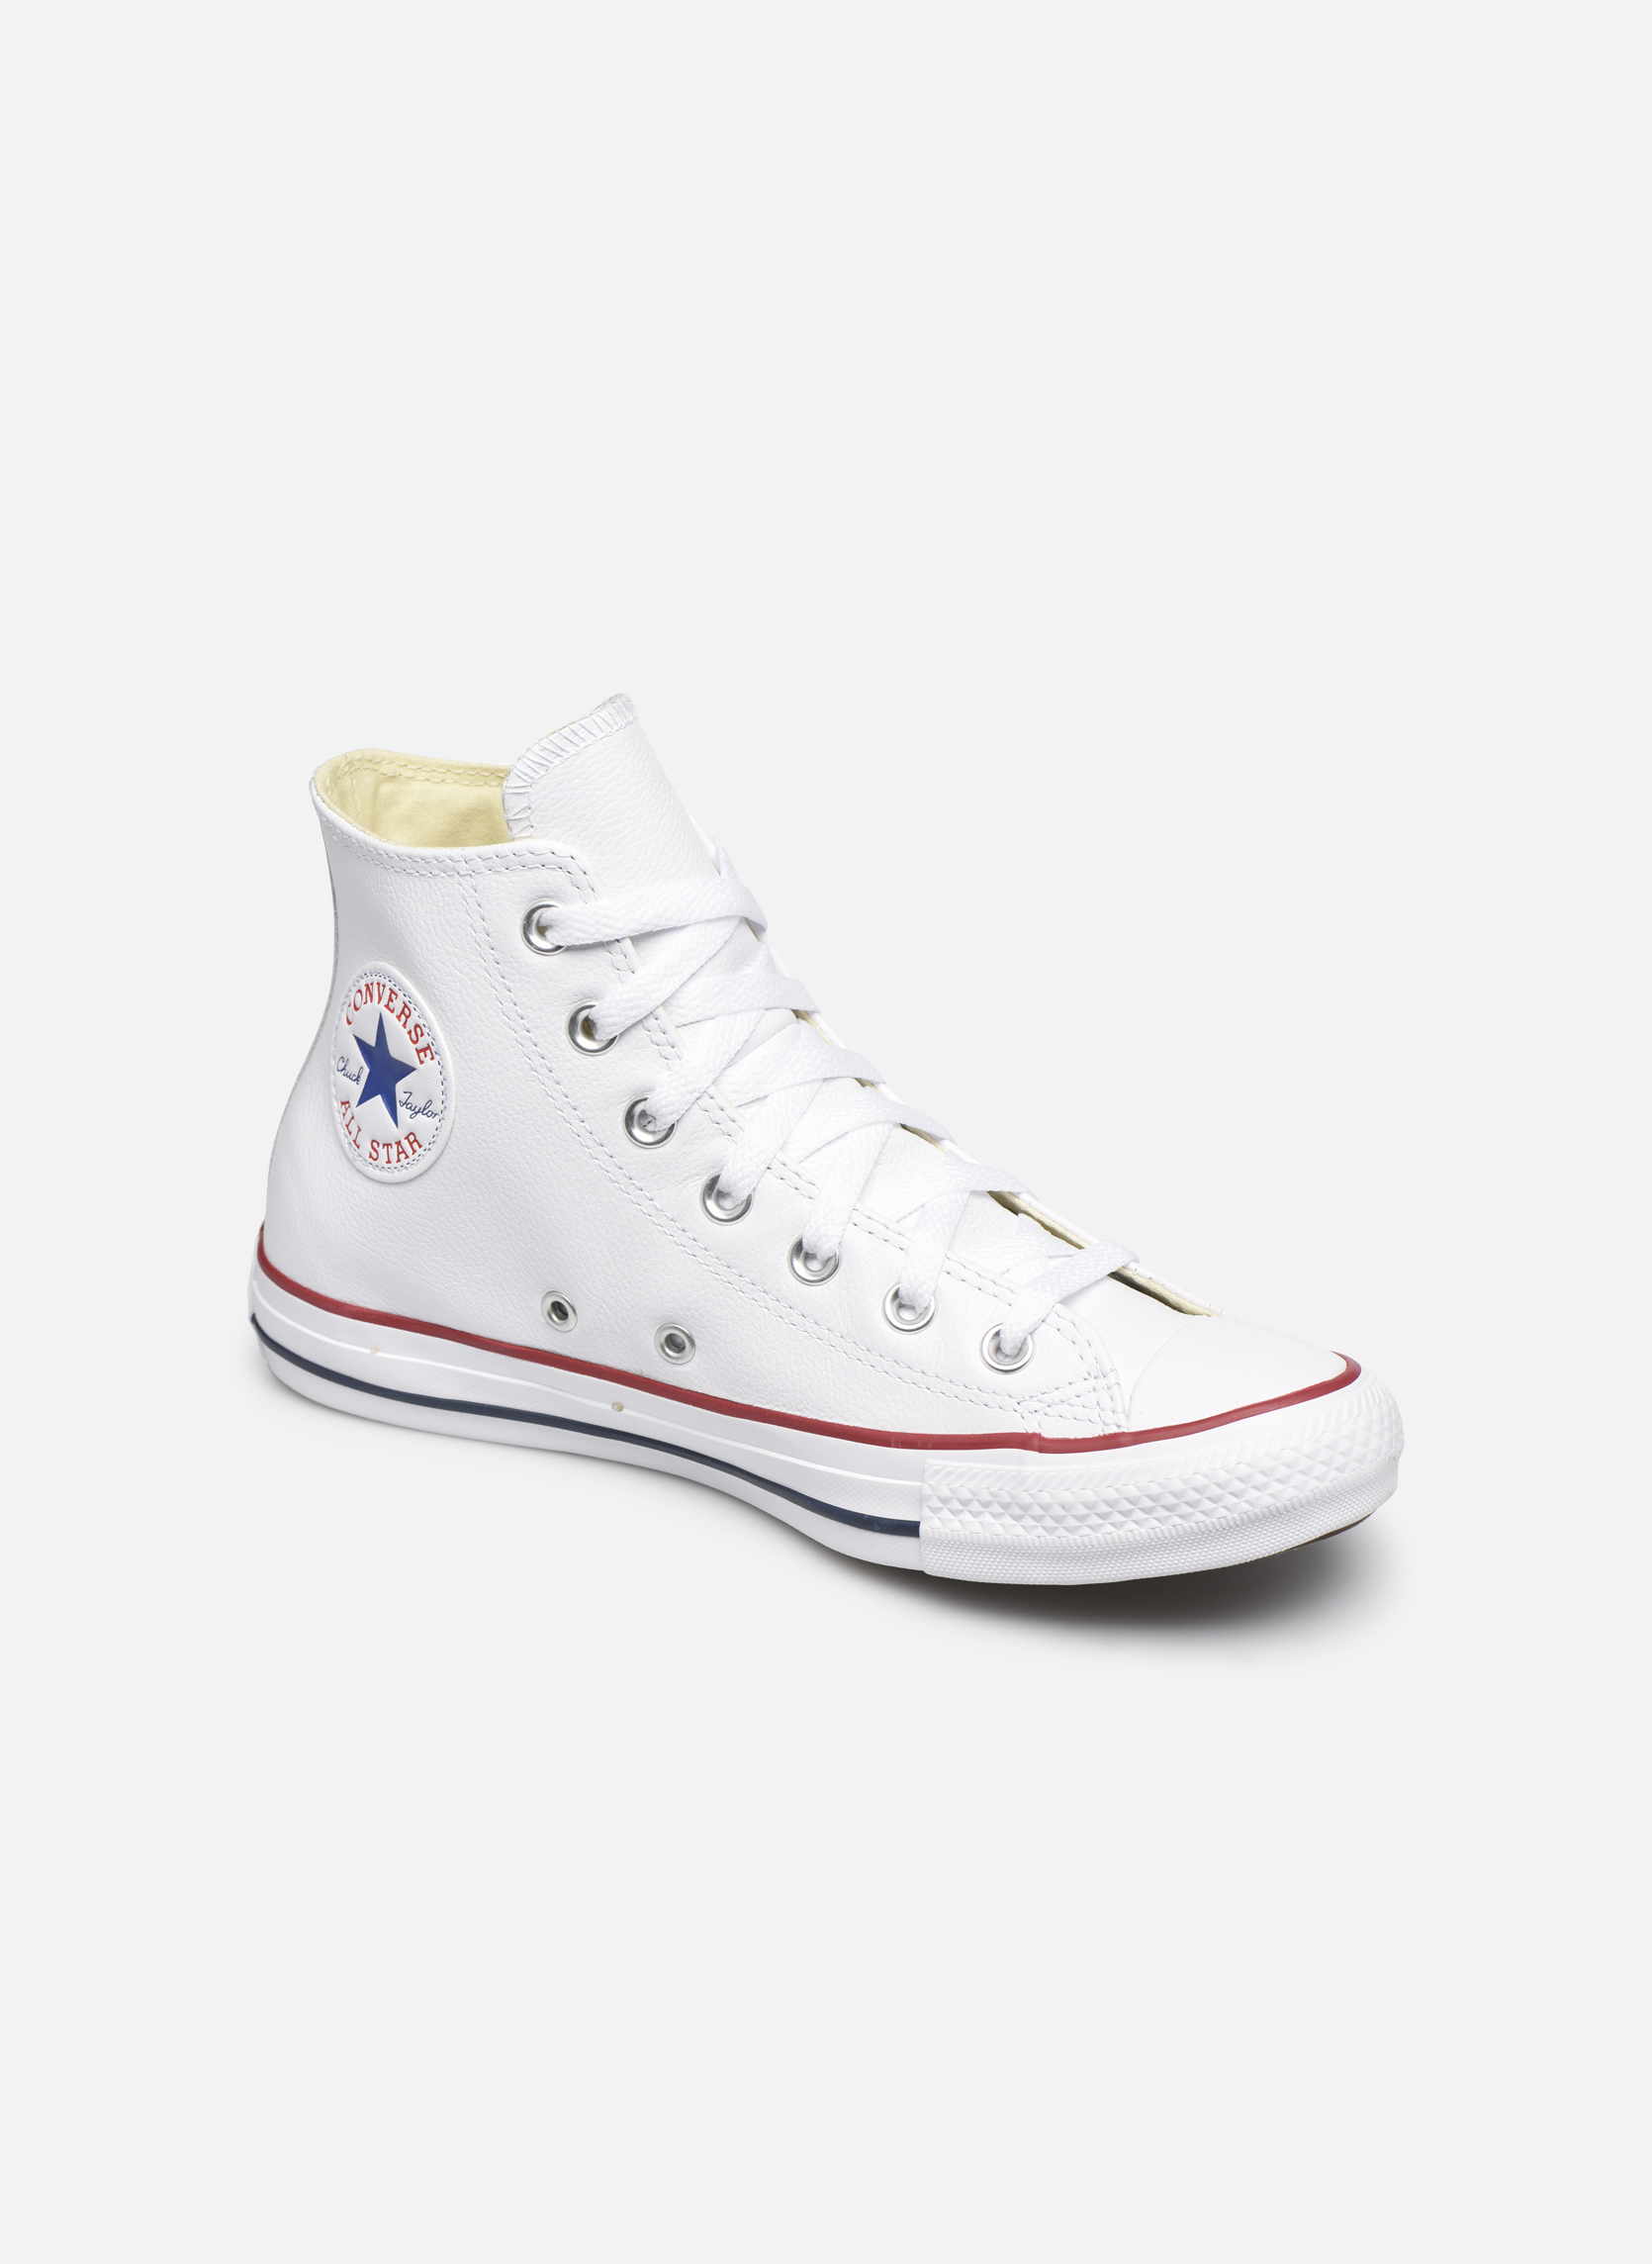 Baskets Femme Chuck Taylor All Star Leather Hi W